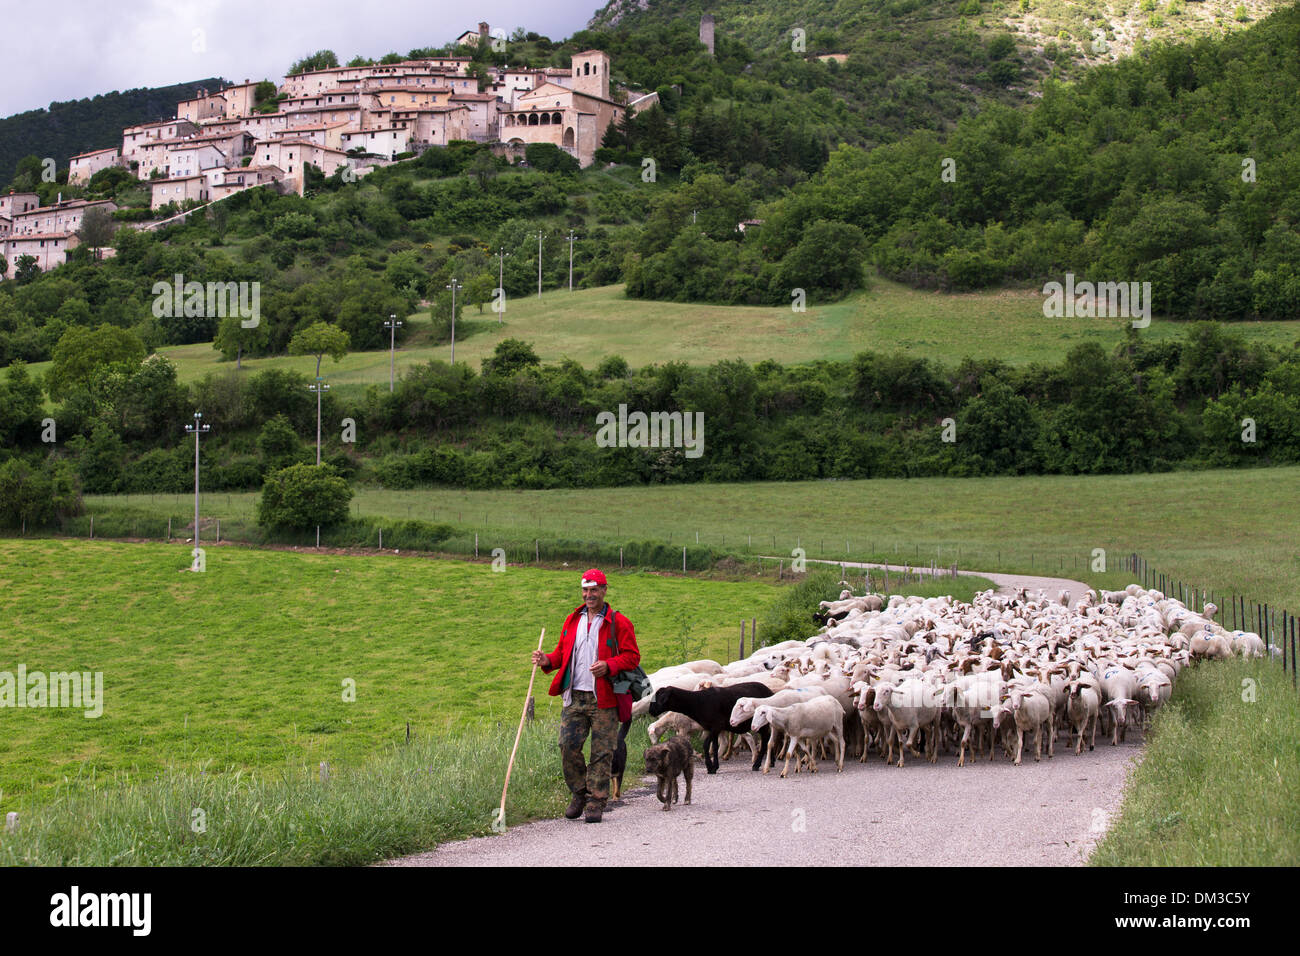 a shepherd with his flock, Campi, Valnerina, Umbria, Italy - Stock Image